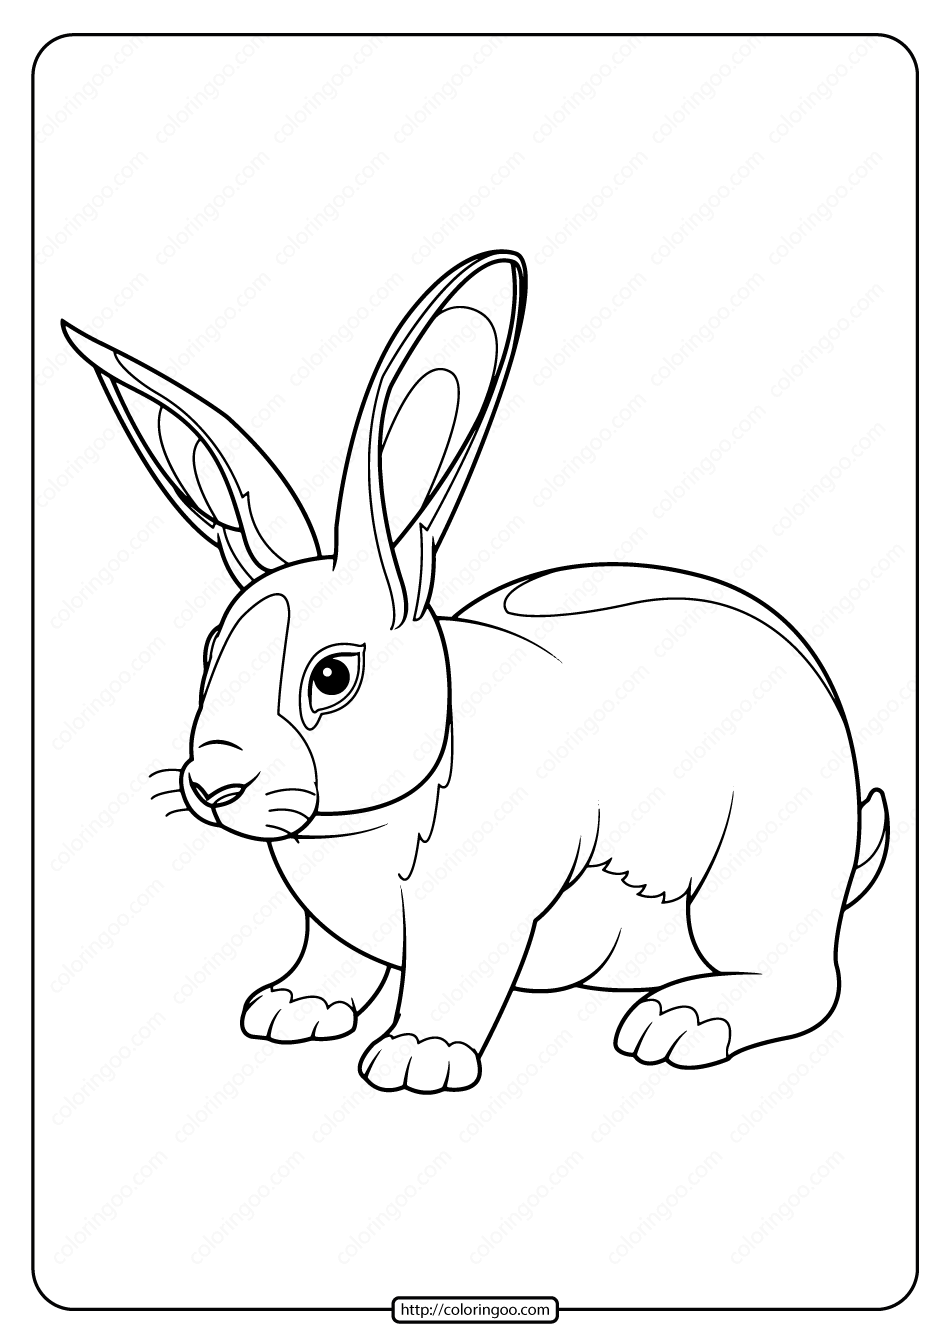 Printable Baby Rabbit Pdf Coloring Page Toddler Coloring Book Rabbit Colors Printable Coloring Book